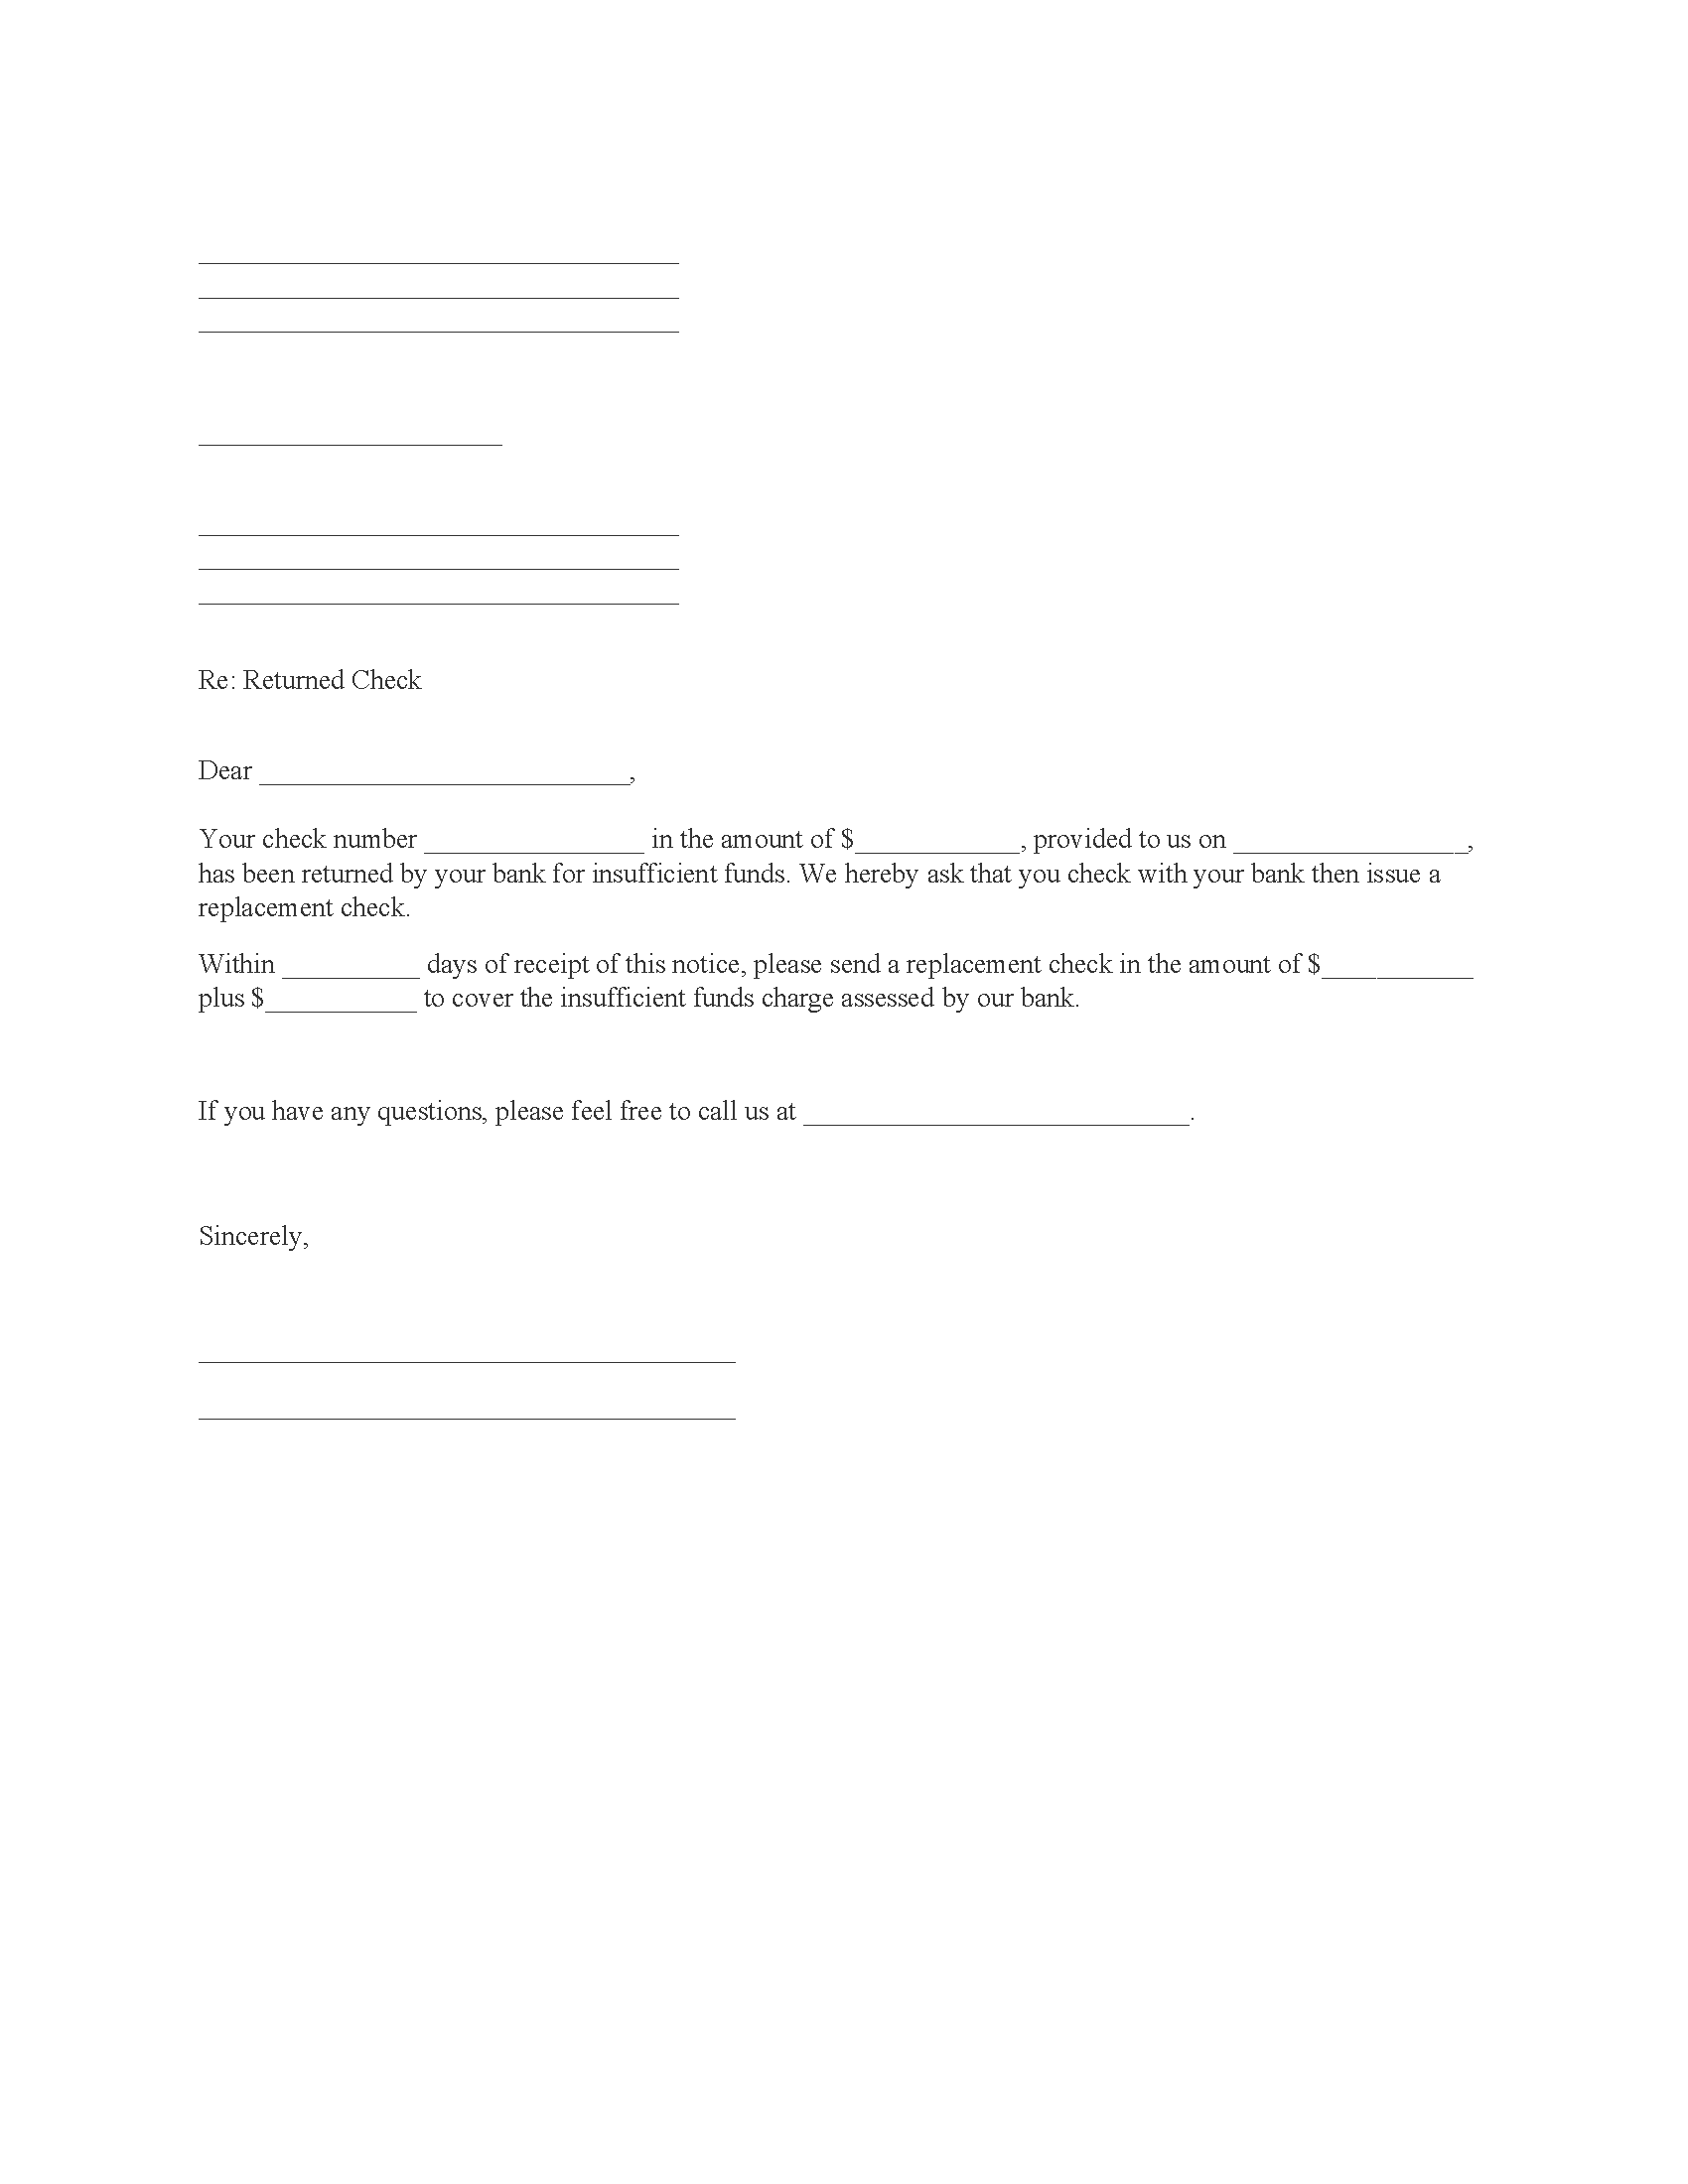 Notice of Returned Check